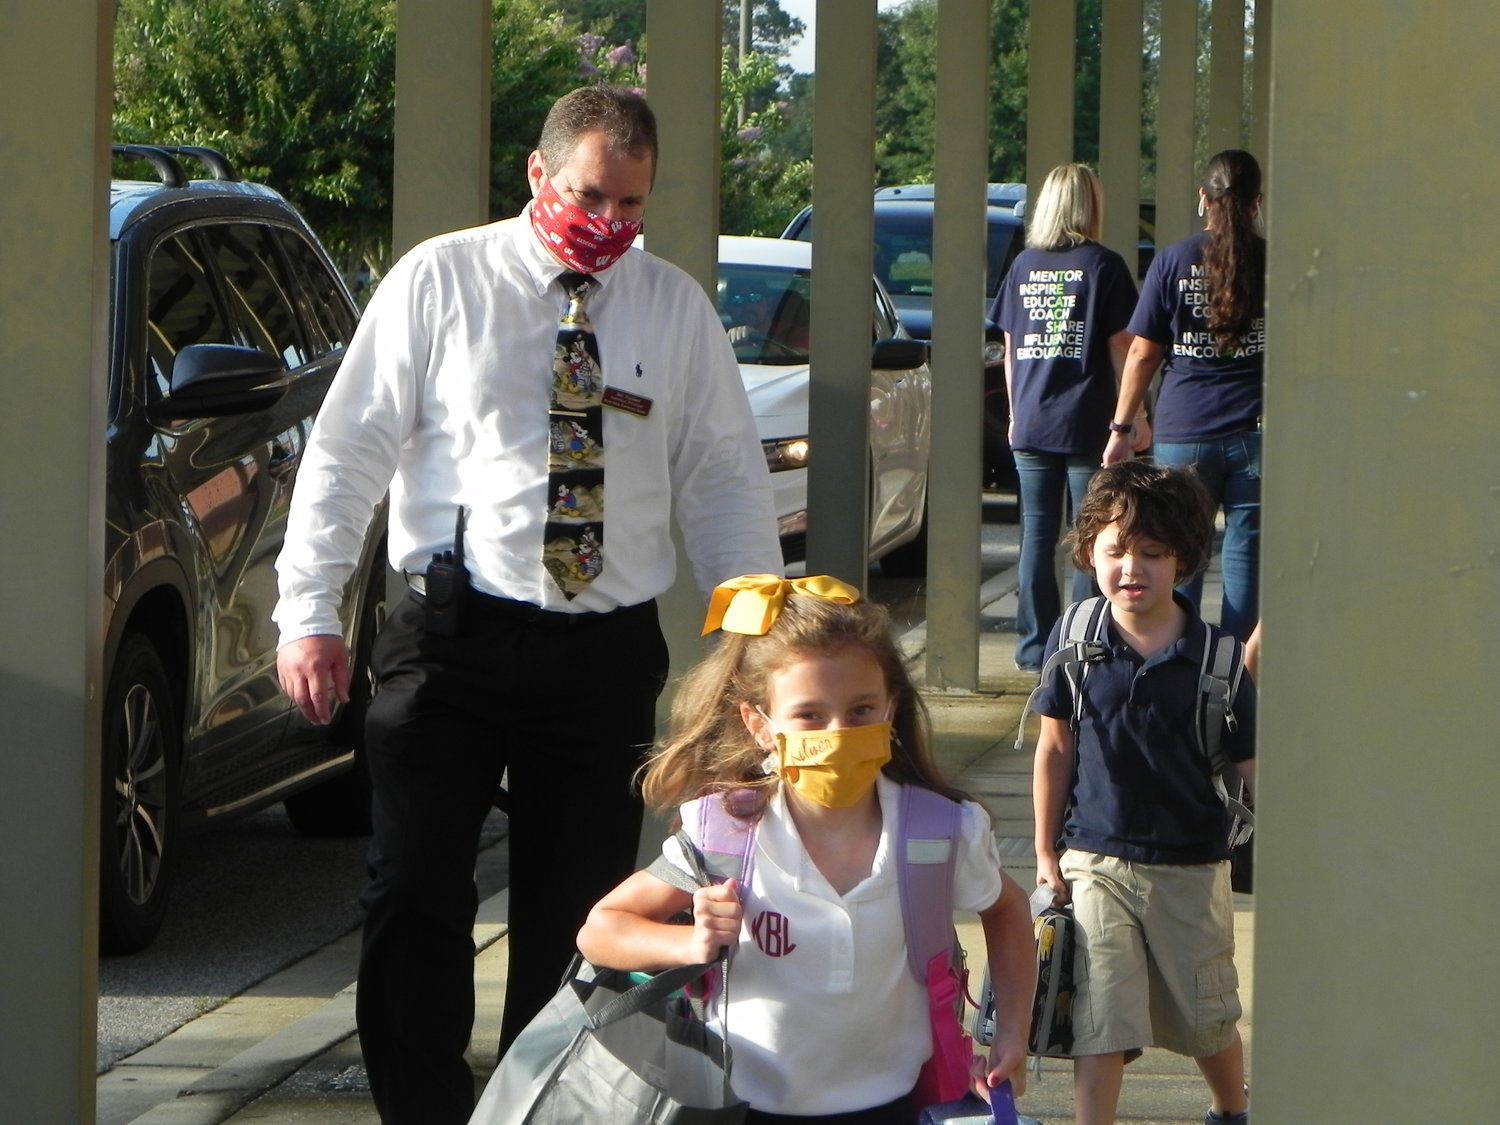 Robertsdale Elementary School Assistant Principal Robert Weichert greets students on the first day of school Wednesday.